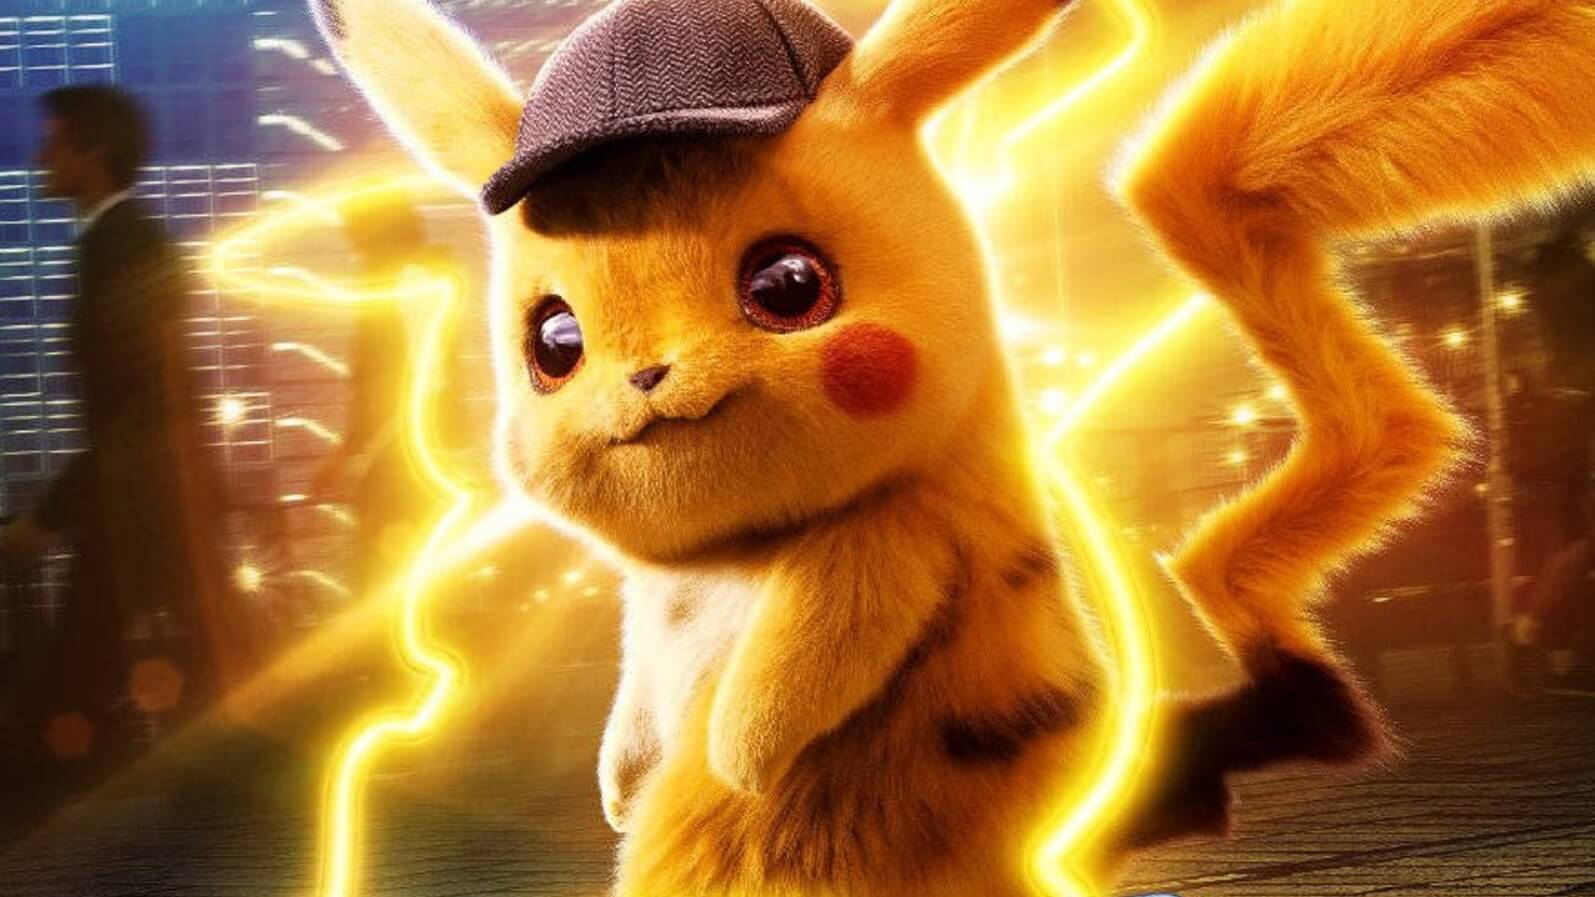 Pickachu - Original image